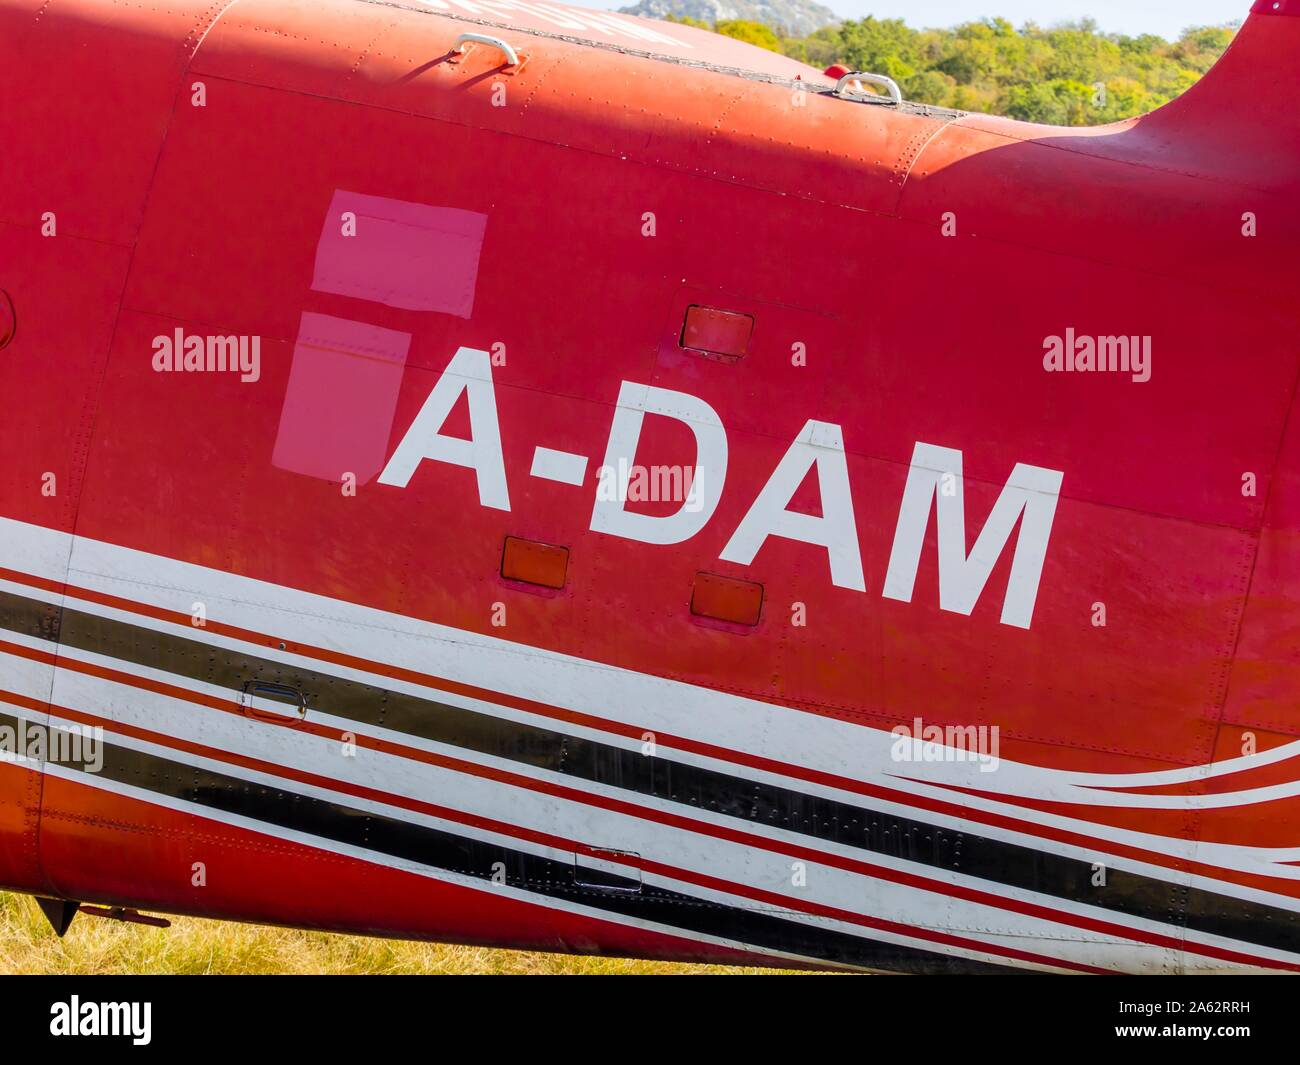 """Antonov (PZL-Mielec) An-2R - Air-Tractor 9A-DAM on airport Grobnik October 2019 in livery for filming movie series """"Strike back"""", registration A-DAM Stock Photo"""